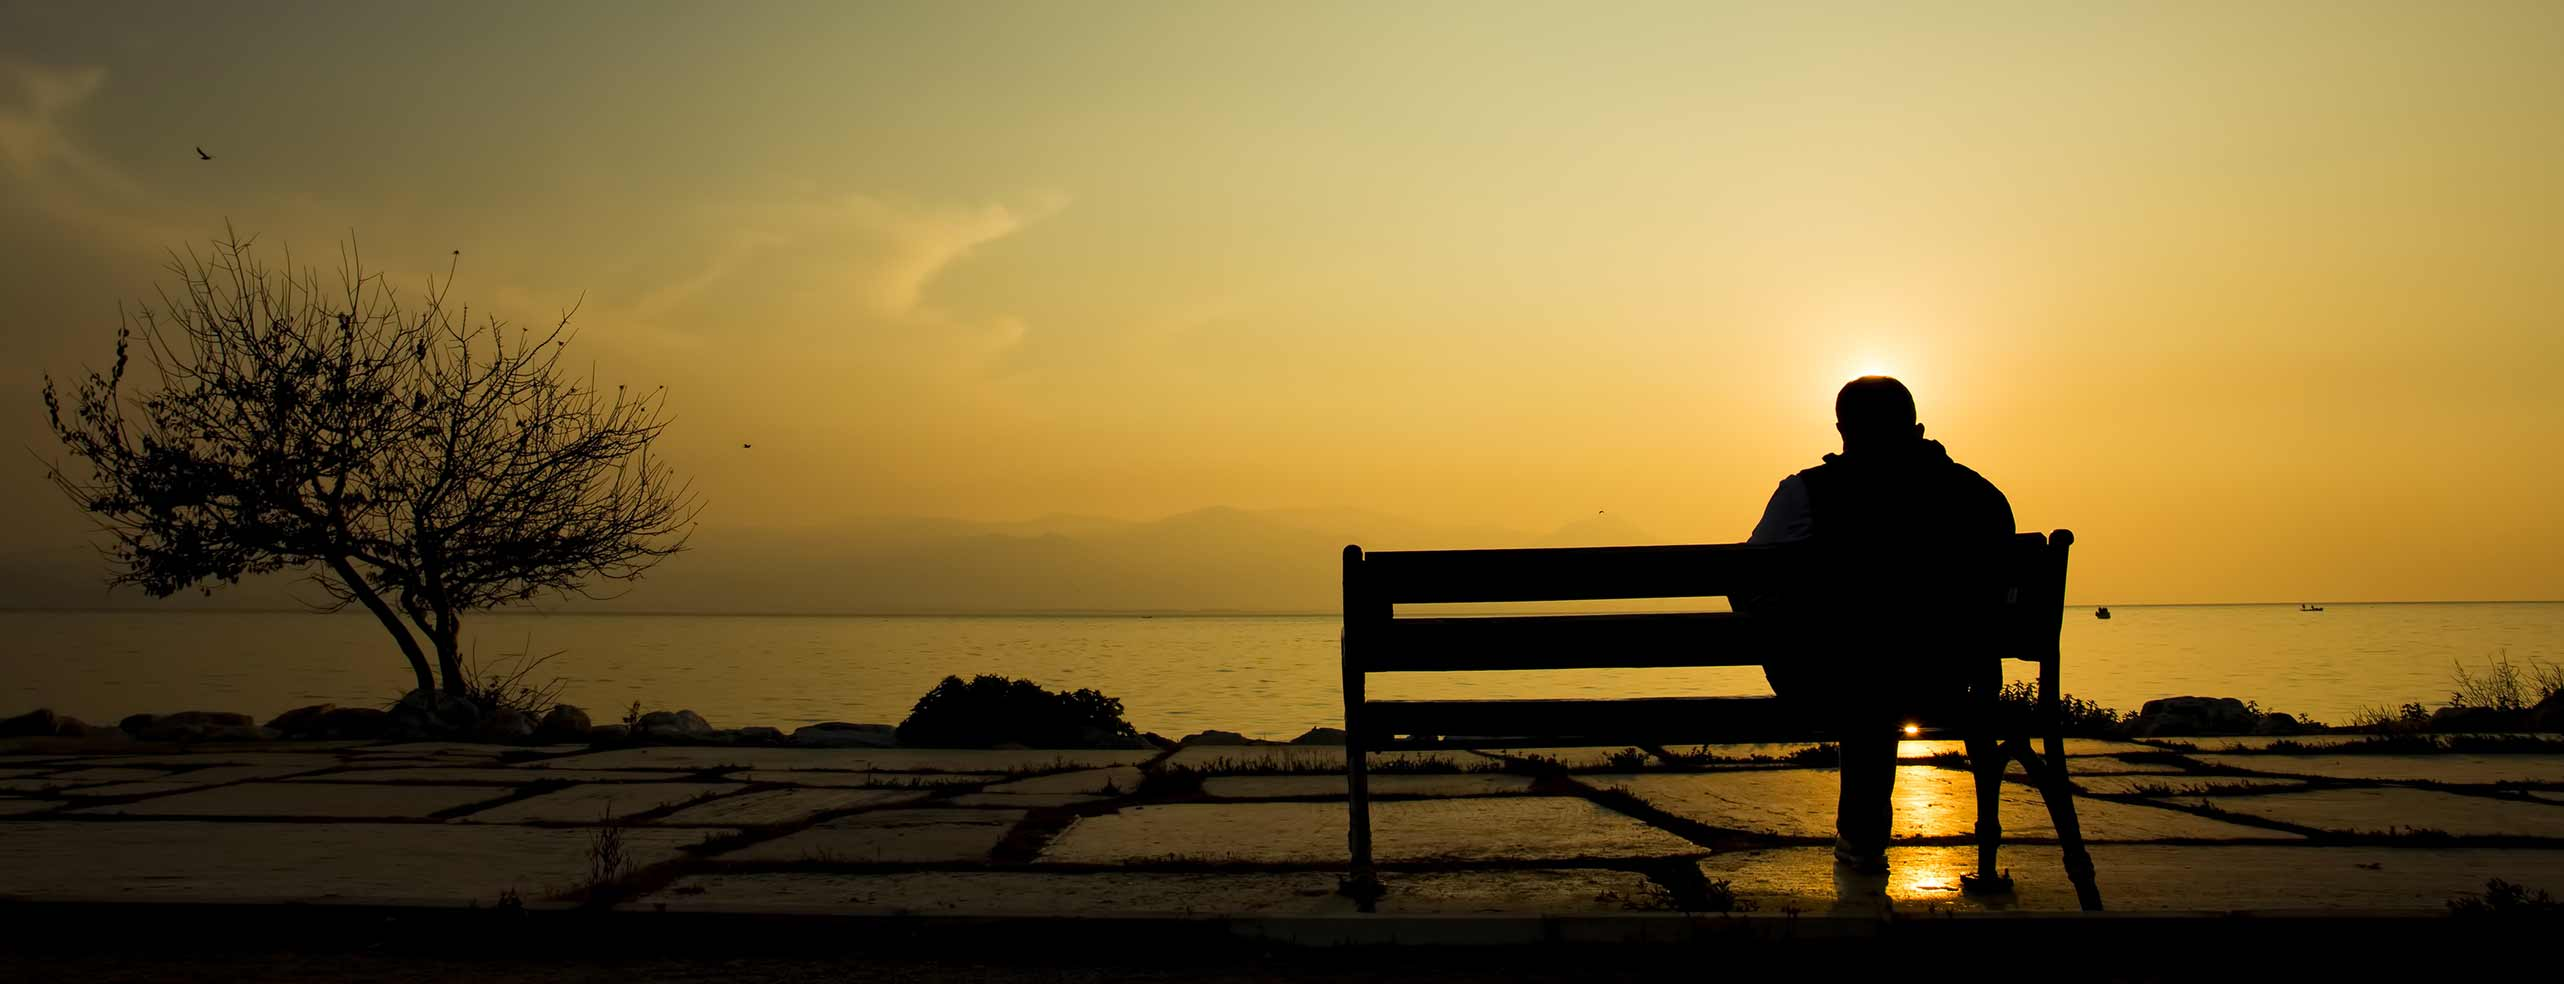 Lonely person on bench (coast)